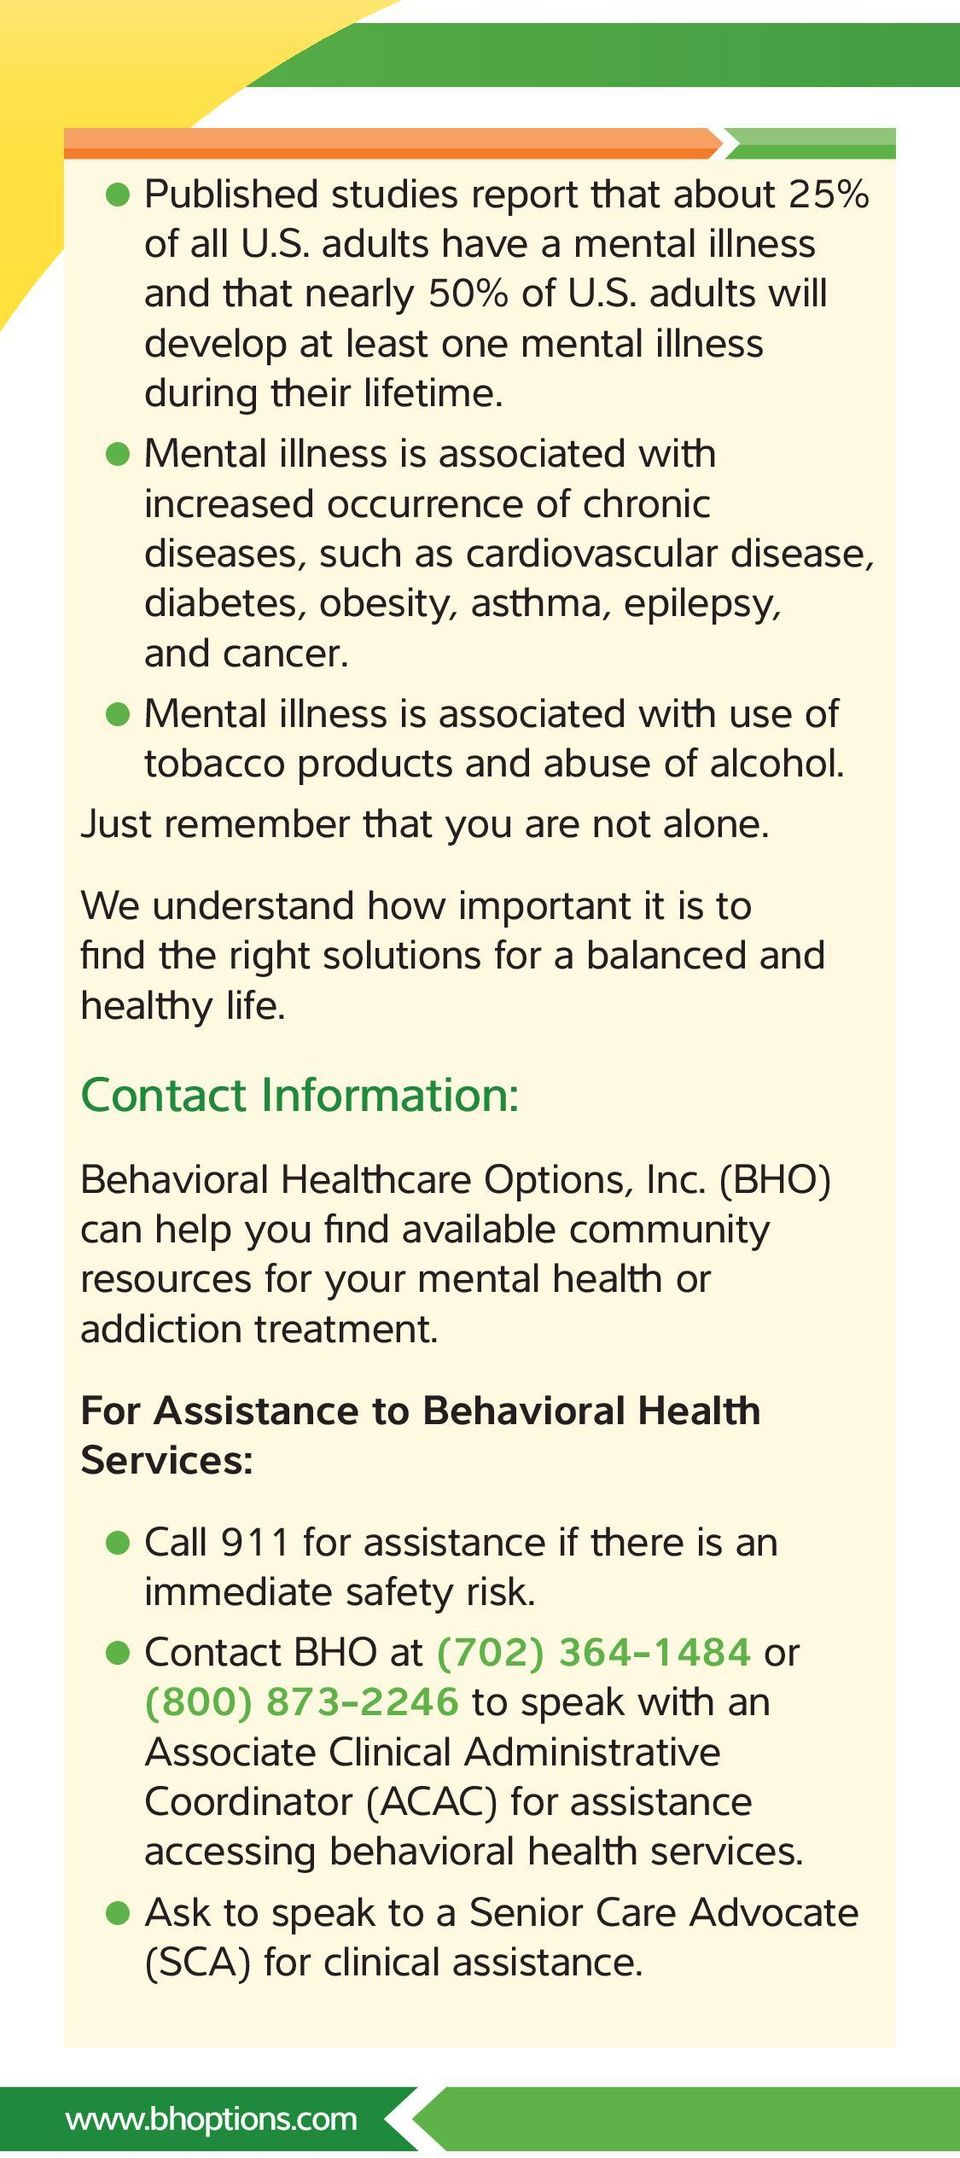 Mental illness is associated with use of tobacco products and abuse of alcohol. Just remember that you are not alone.